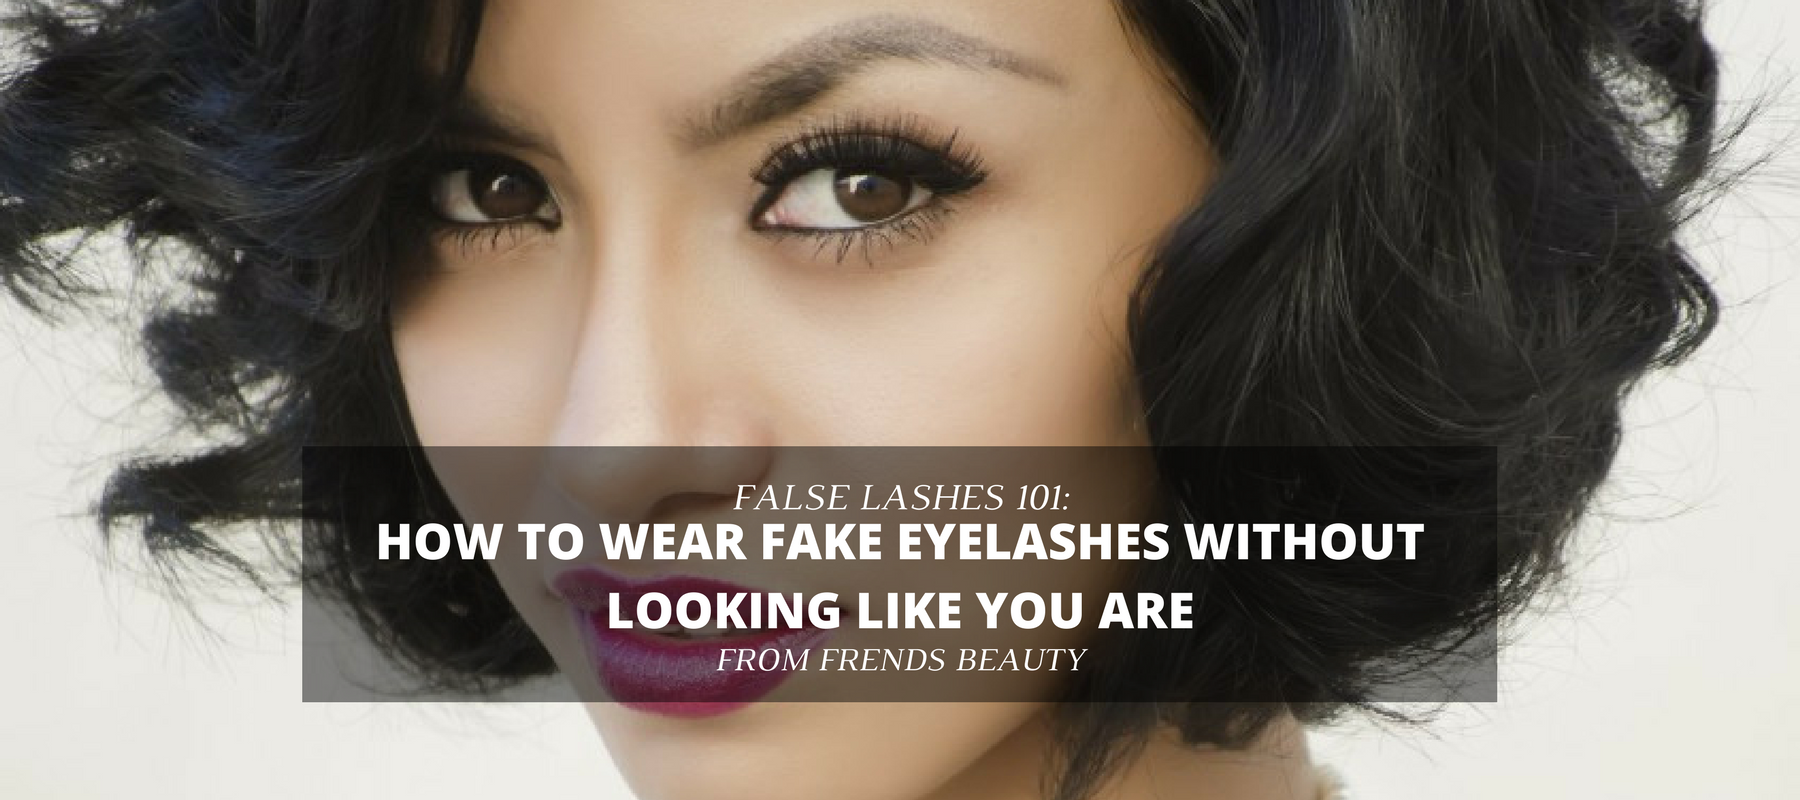 622c1d15f78 How to Wear Fake Eyelashes Without Looking Like You Are - Frends ...